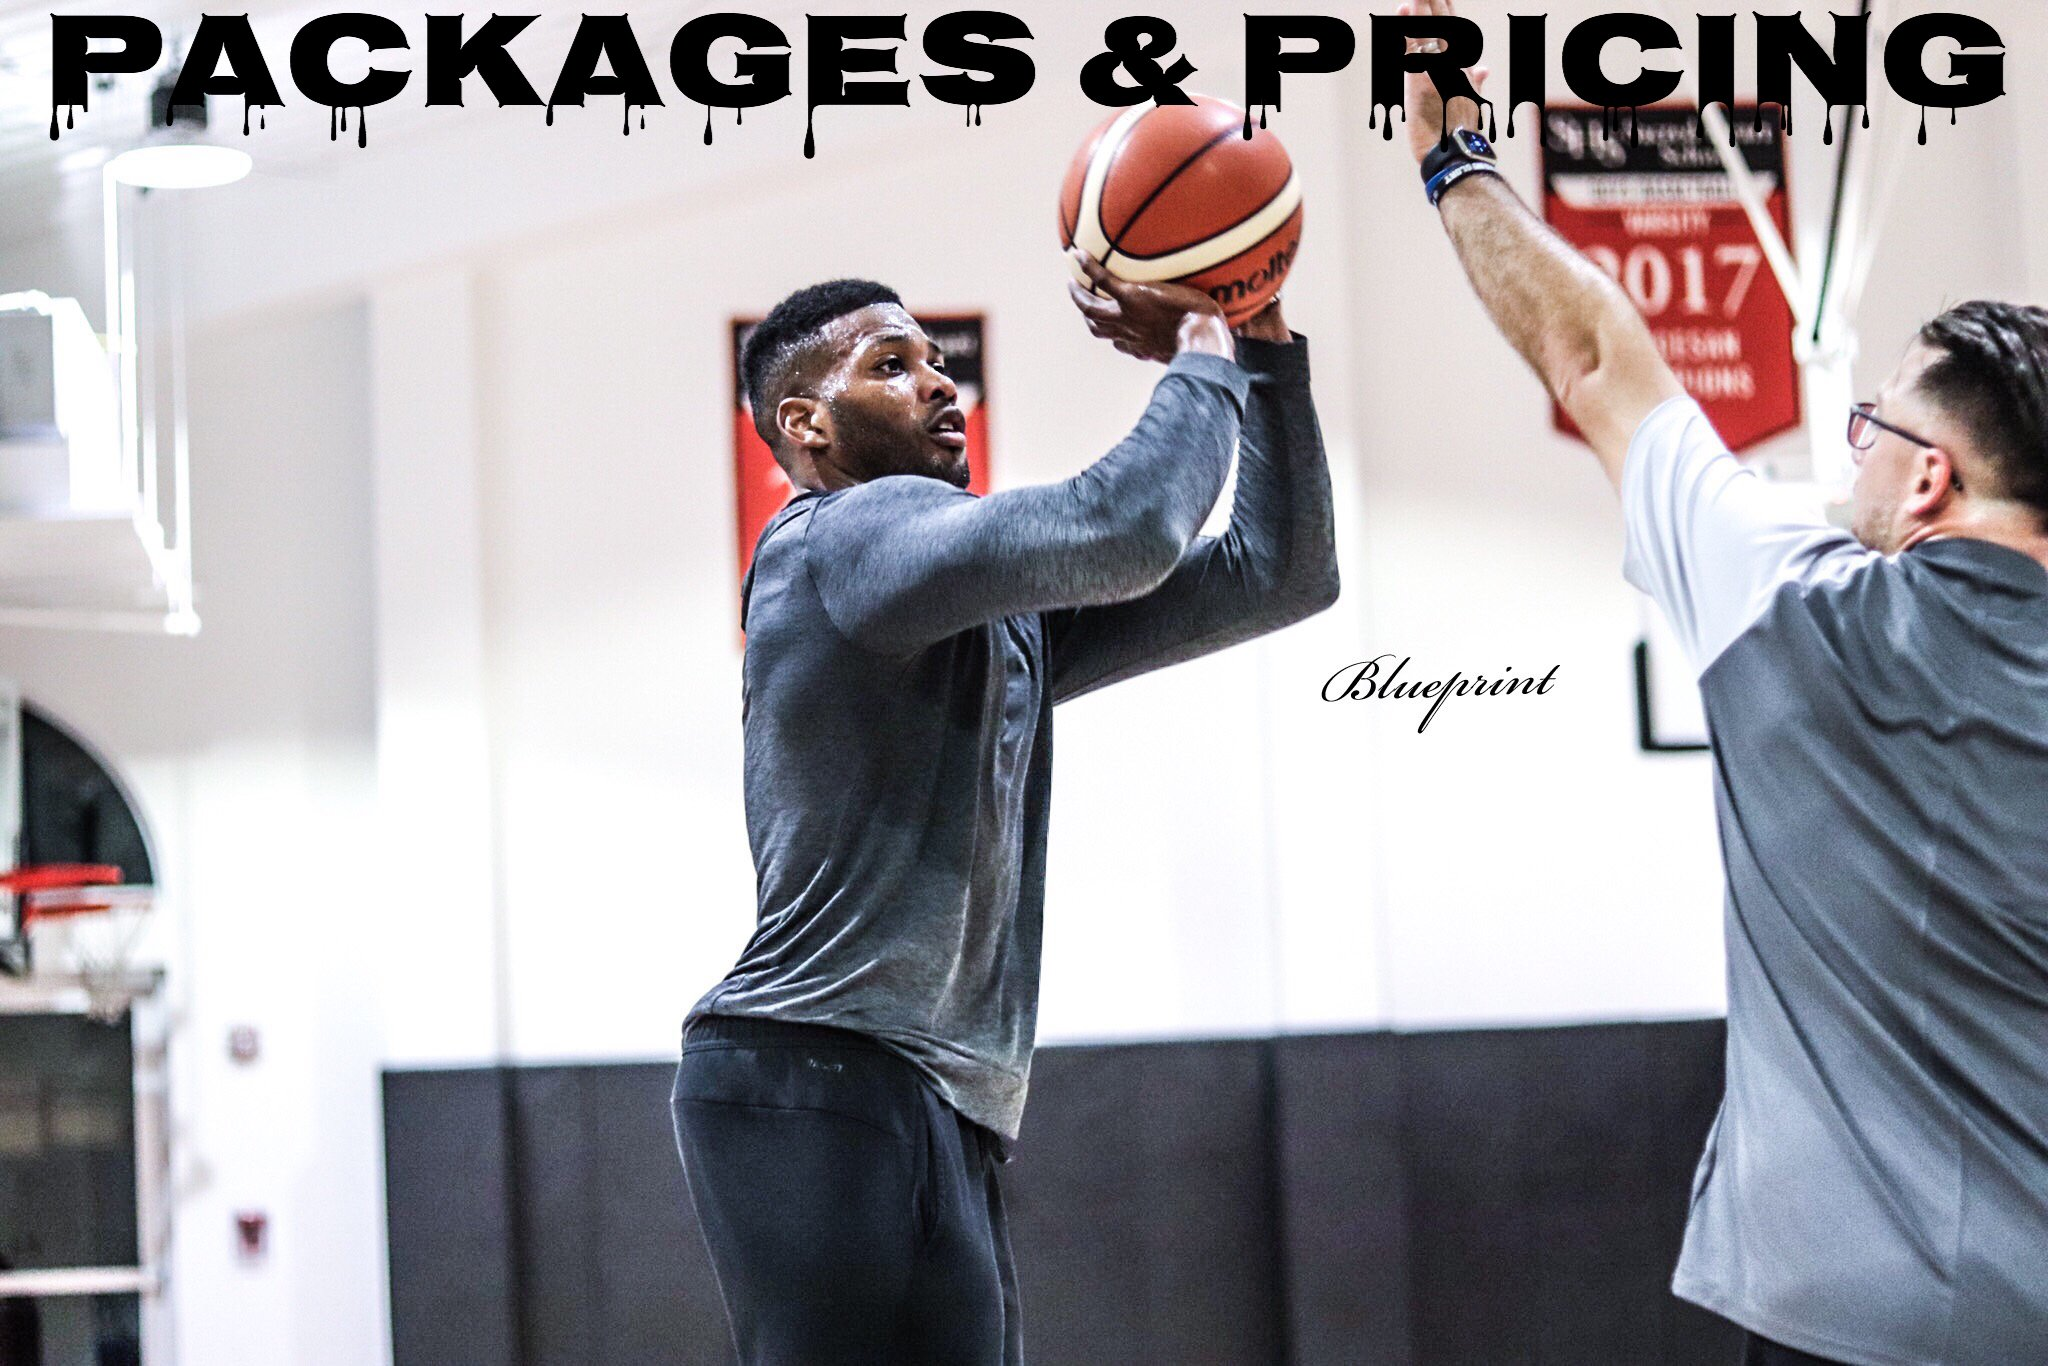 Packages & Pricing